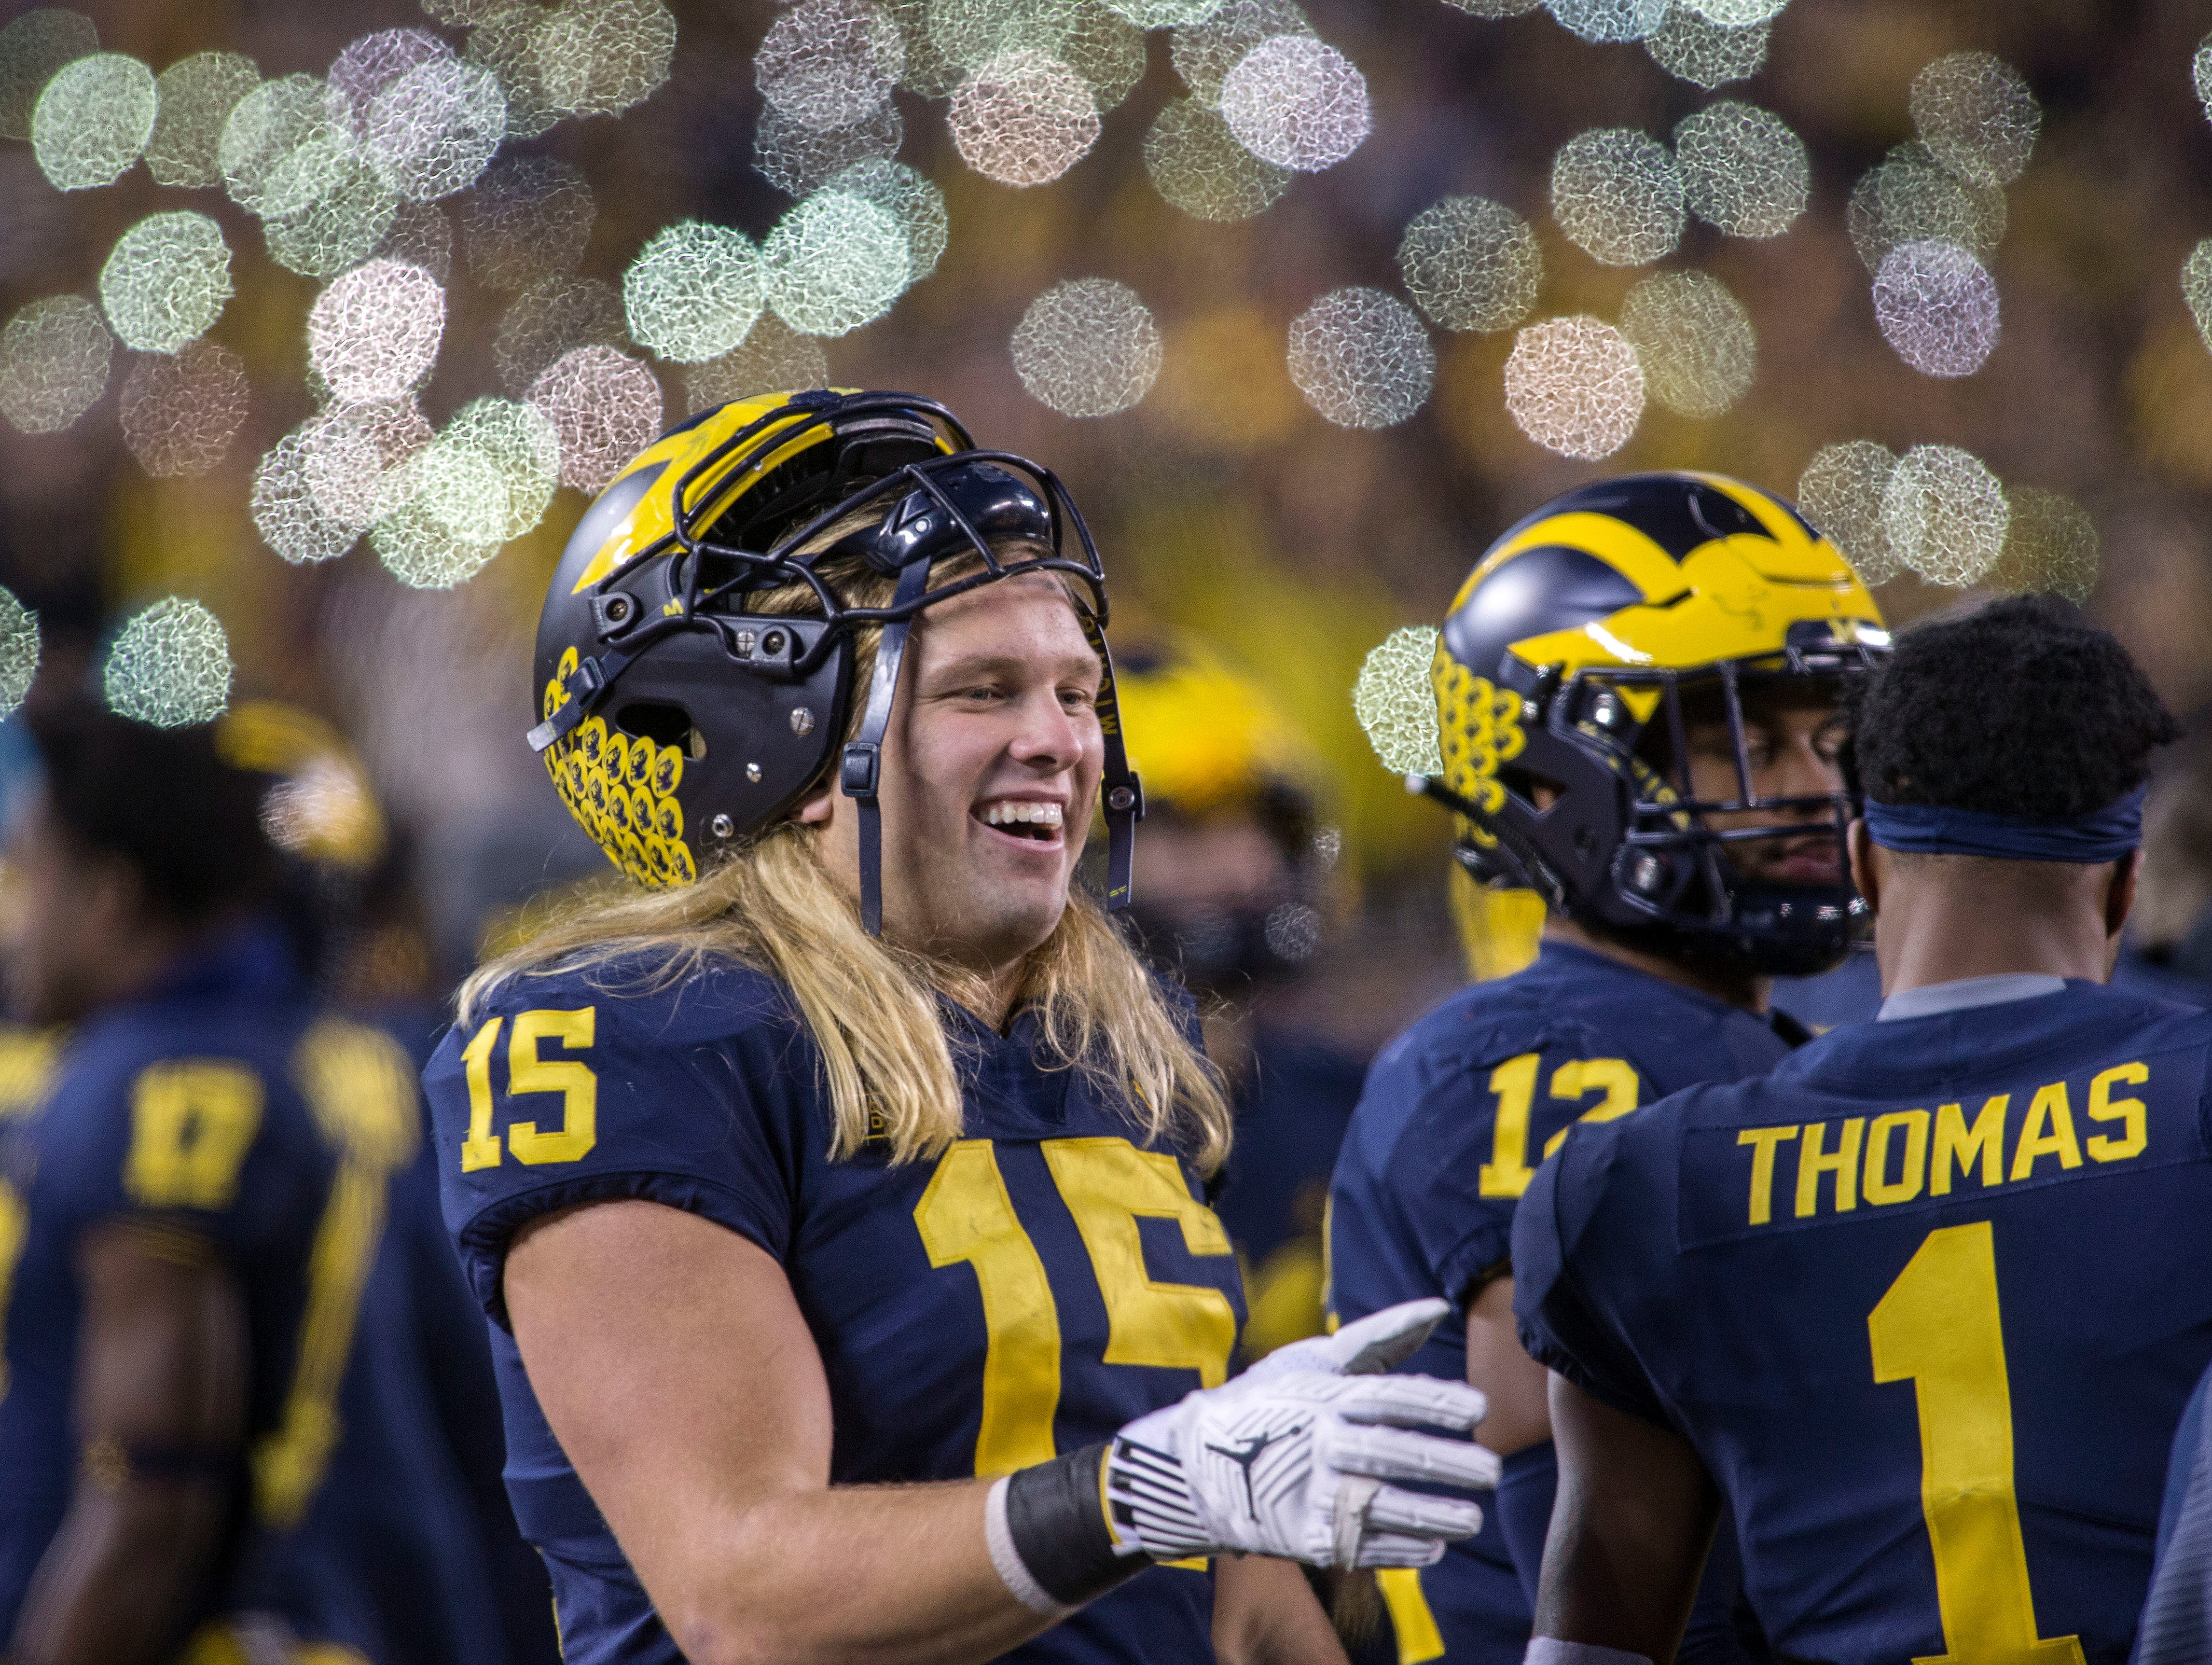 Michigan defensive lineman Chase Winovich (15) walks his bench area in the fourth quarter of an NCAA college football game against Penn State in Ann Arbor, Mich., Saturday, Nov. 3, 2018. Michigan won 42-7. (AP Photo/Tony Ding)